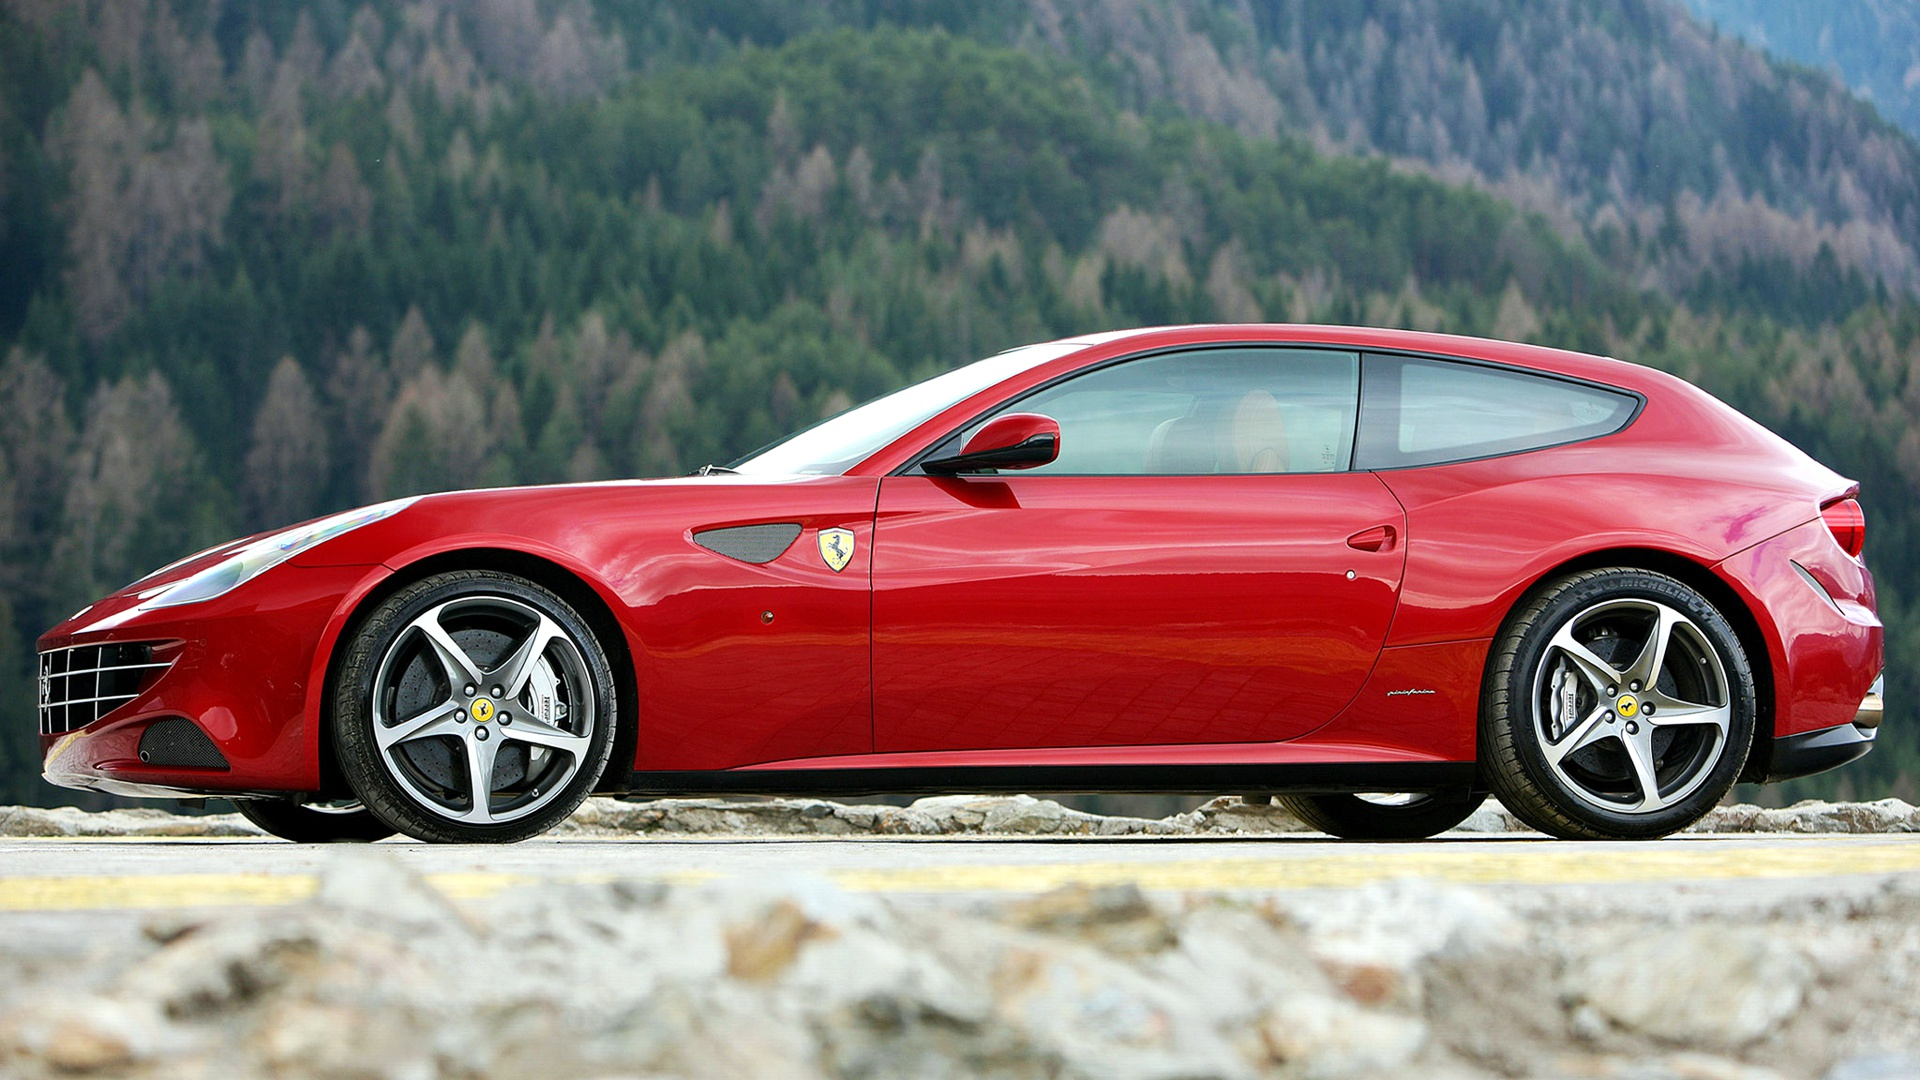 1920x1080 - Ferrari FF Wallpapers 35